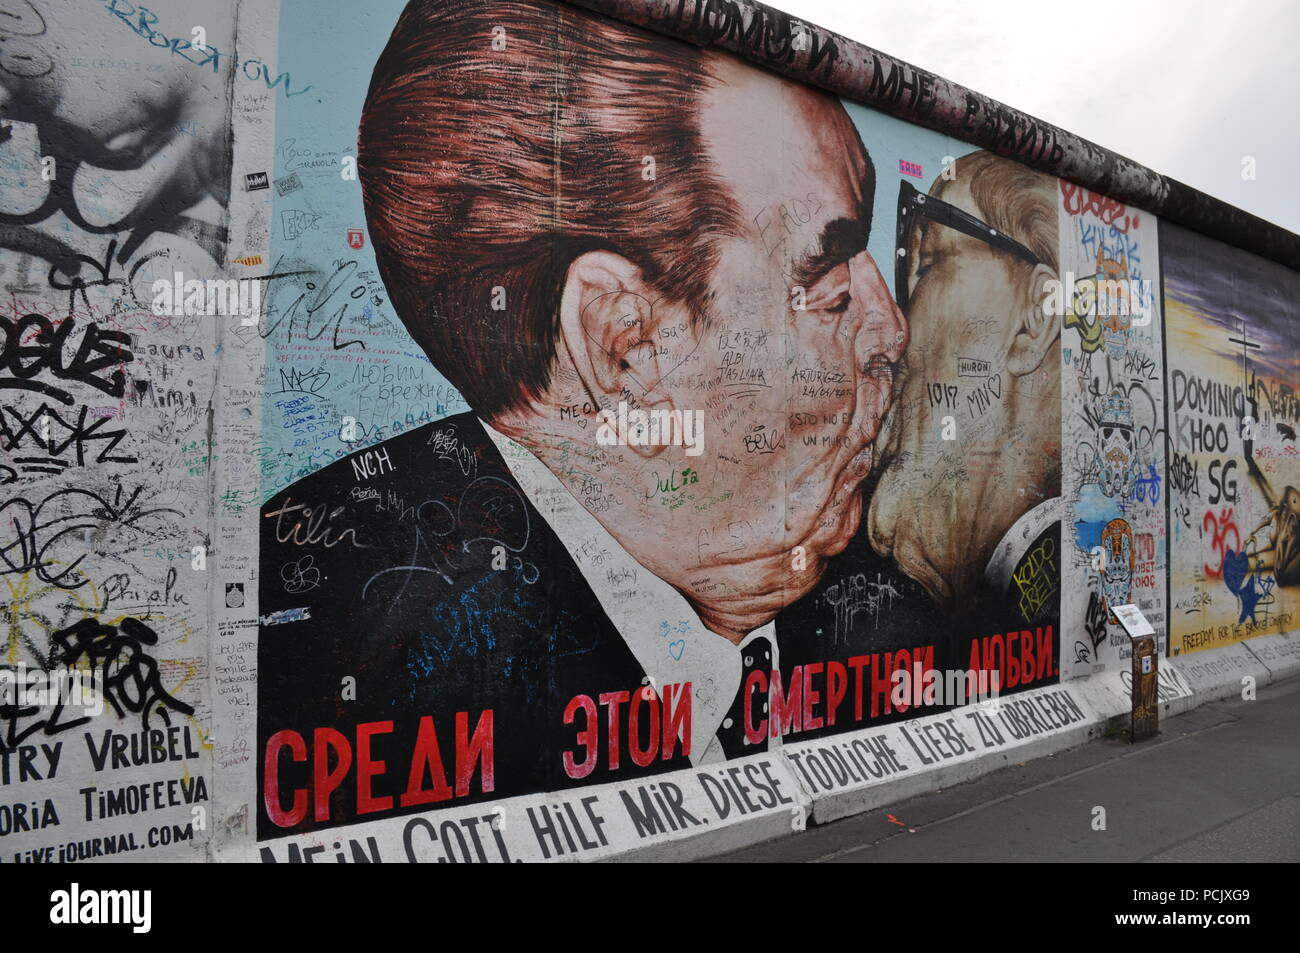 'Frère kiss', East Side Gallery, Berlin, Allemagne Photo Stock